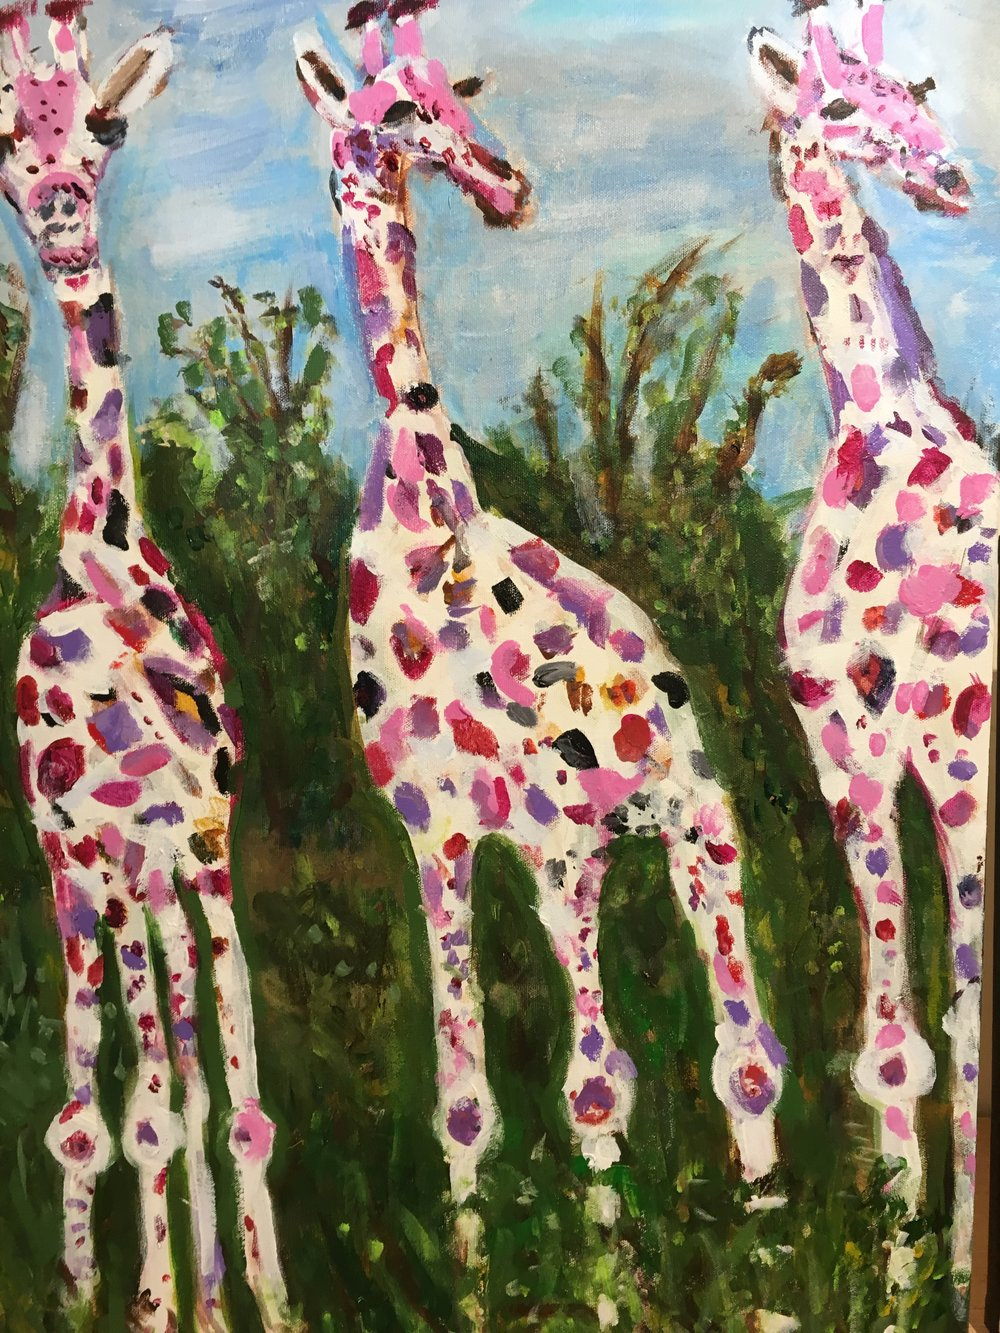 Three Dreamy Giraffes